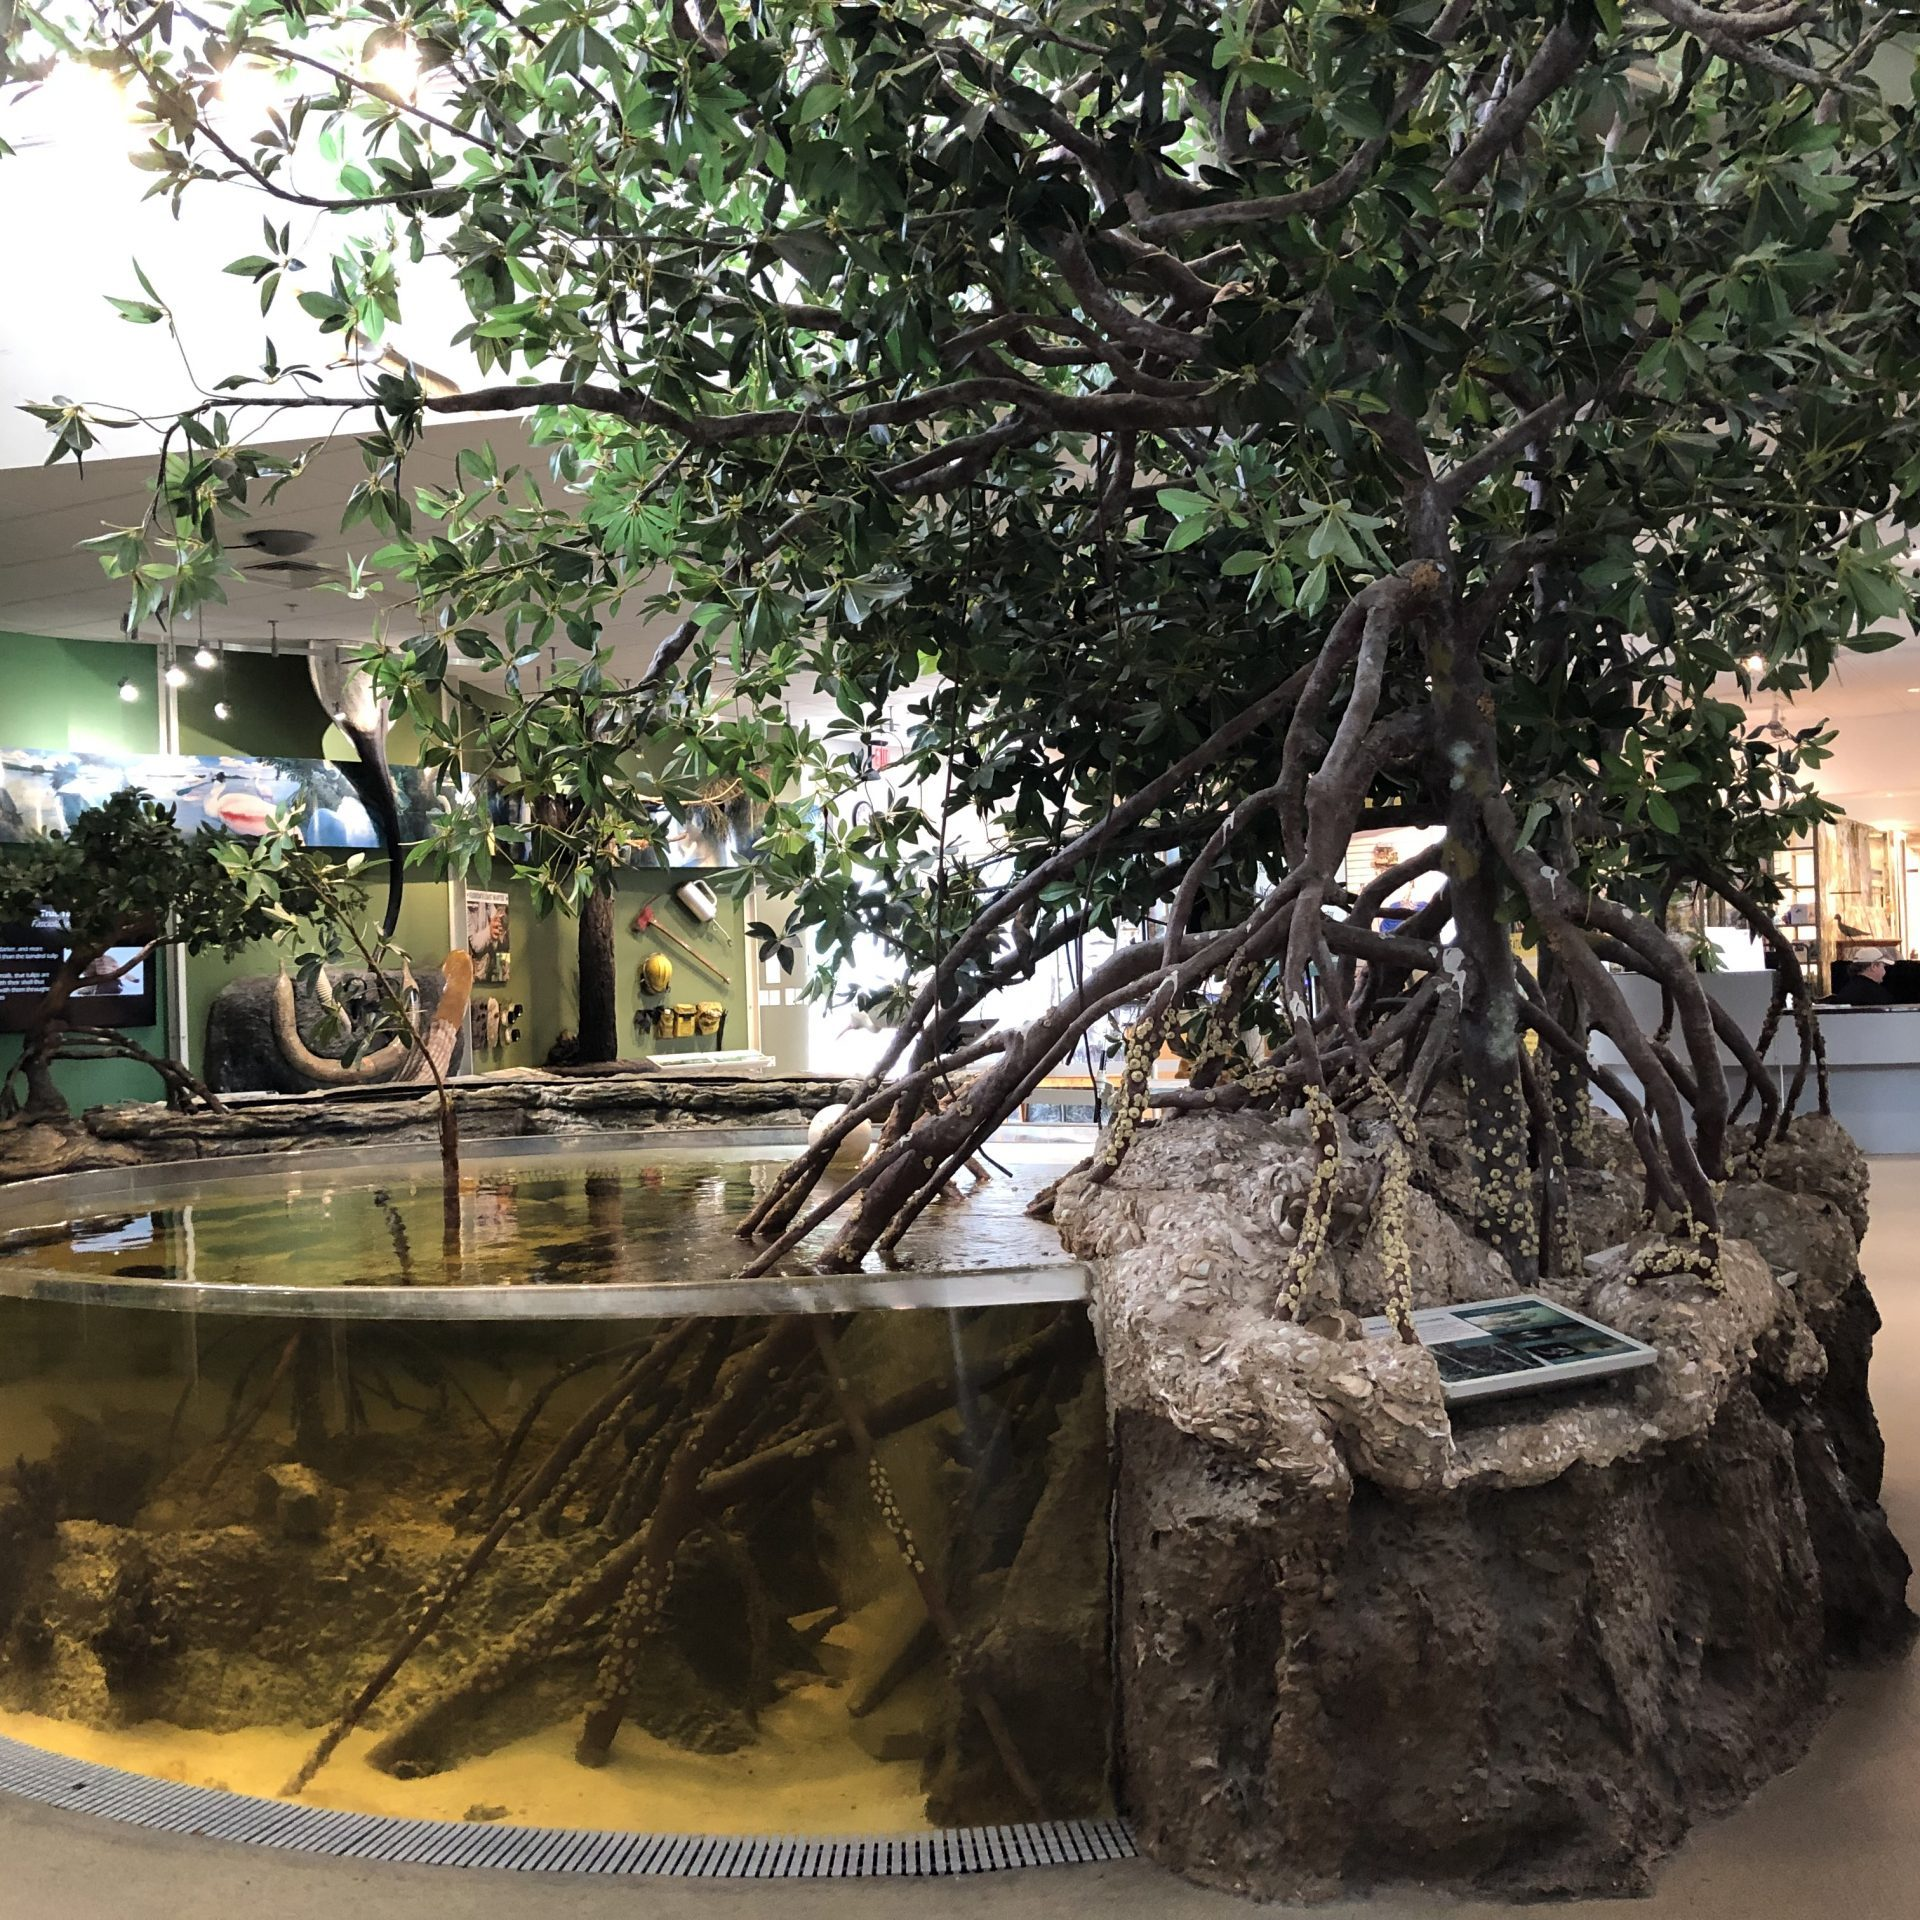 Rookery Bay Environmental Learning Center | Exhibits and Aquariums